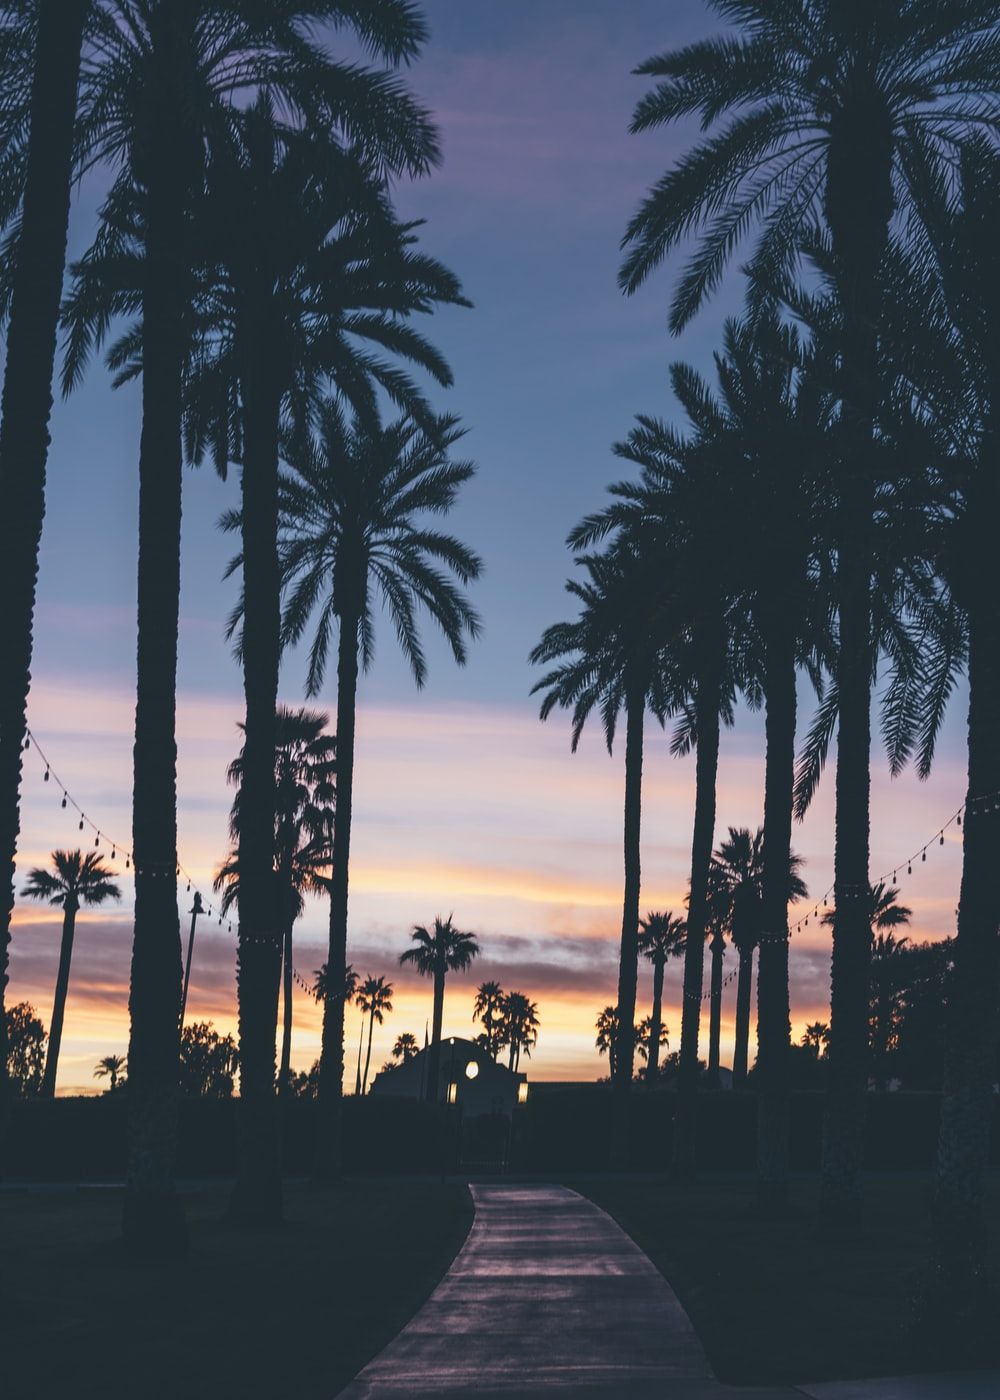 silhouette of houses beside palm trees and pathway